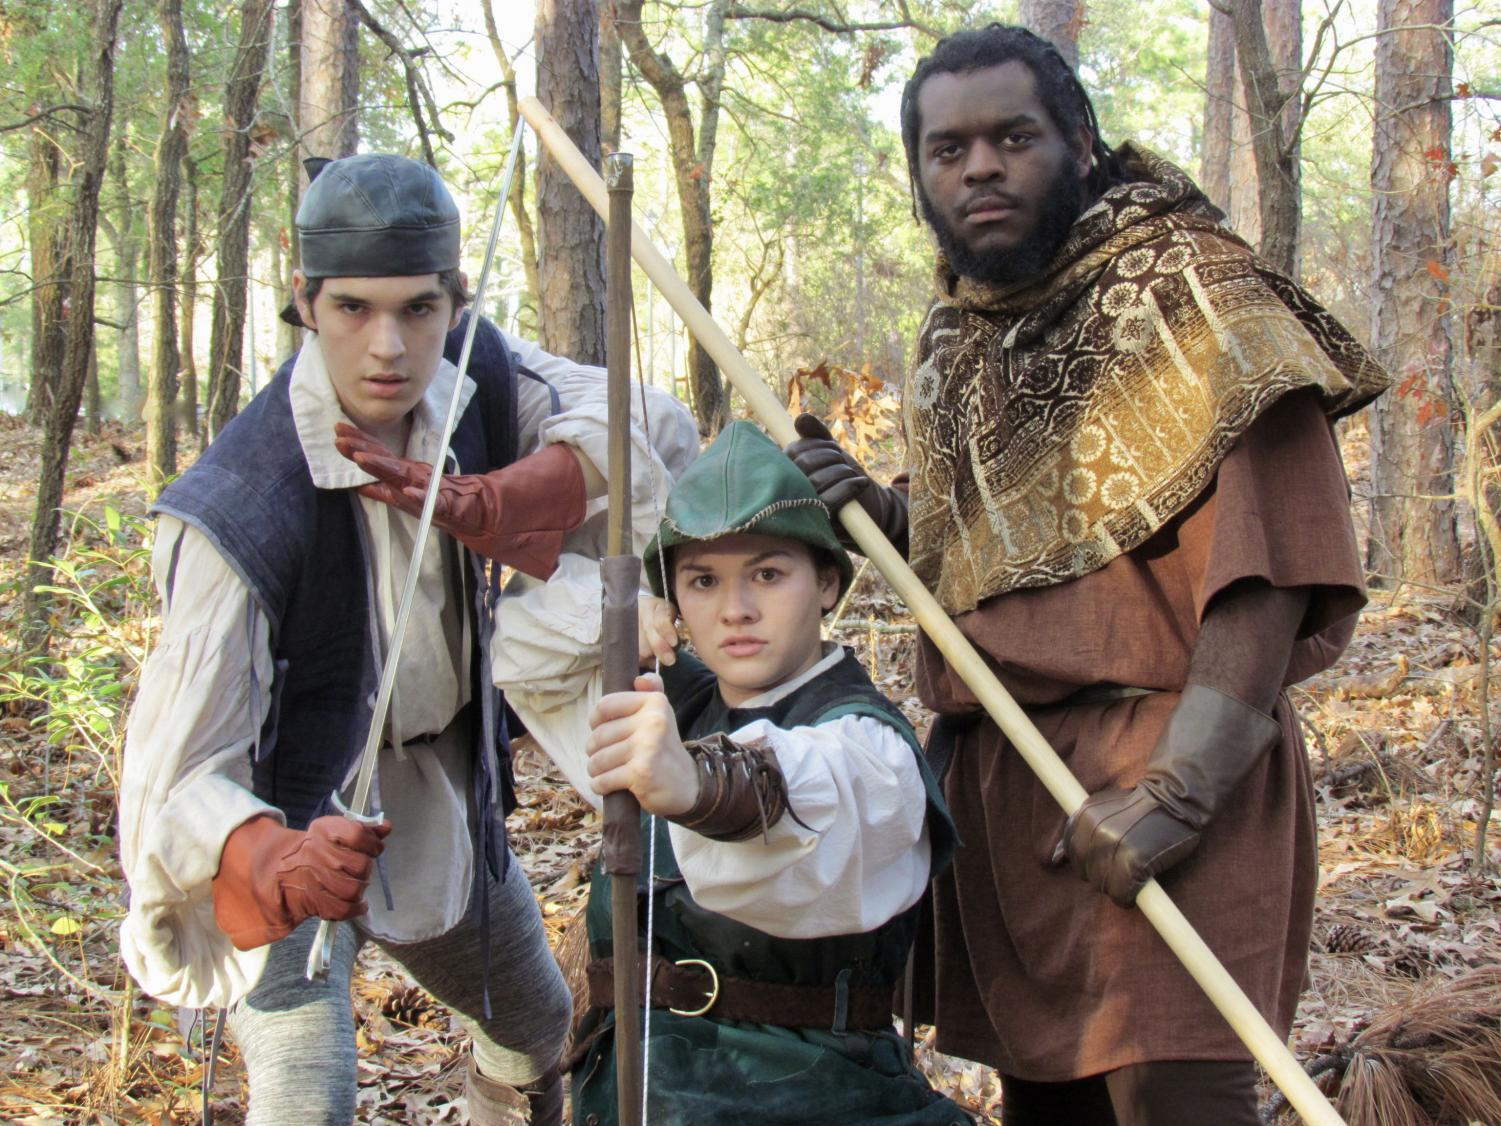 Nicky Taylor as Tommy of No Consequence, Katherine Carr as Robin Hood, Elisha McNeil as Little John. Photographer - Rebecca Edmonds